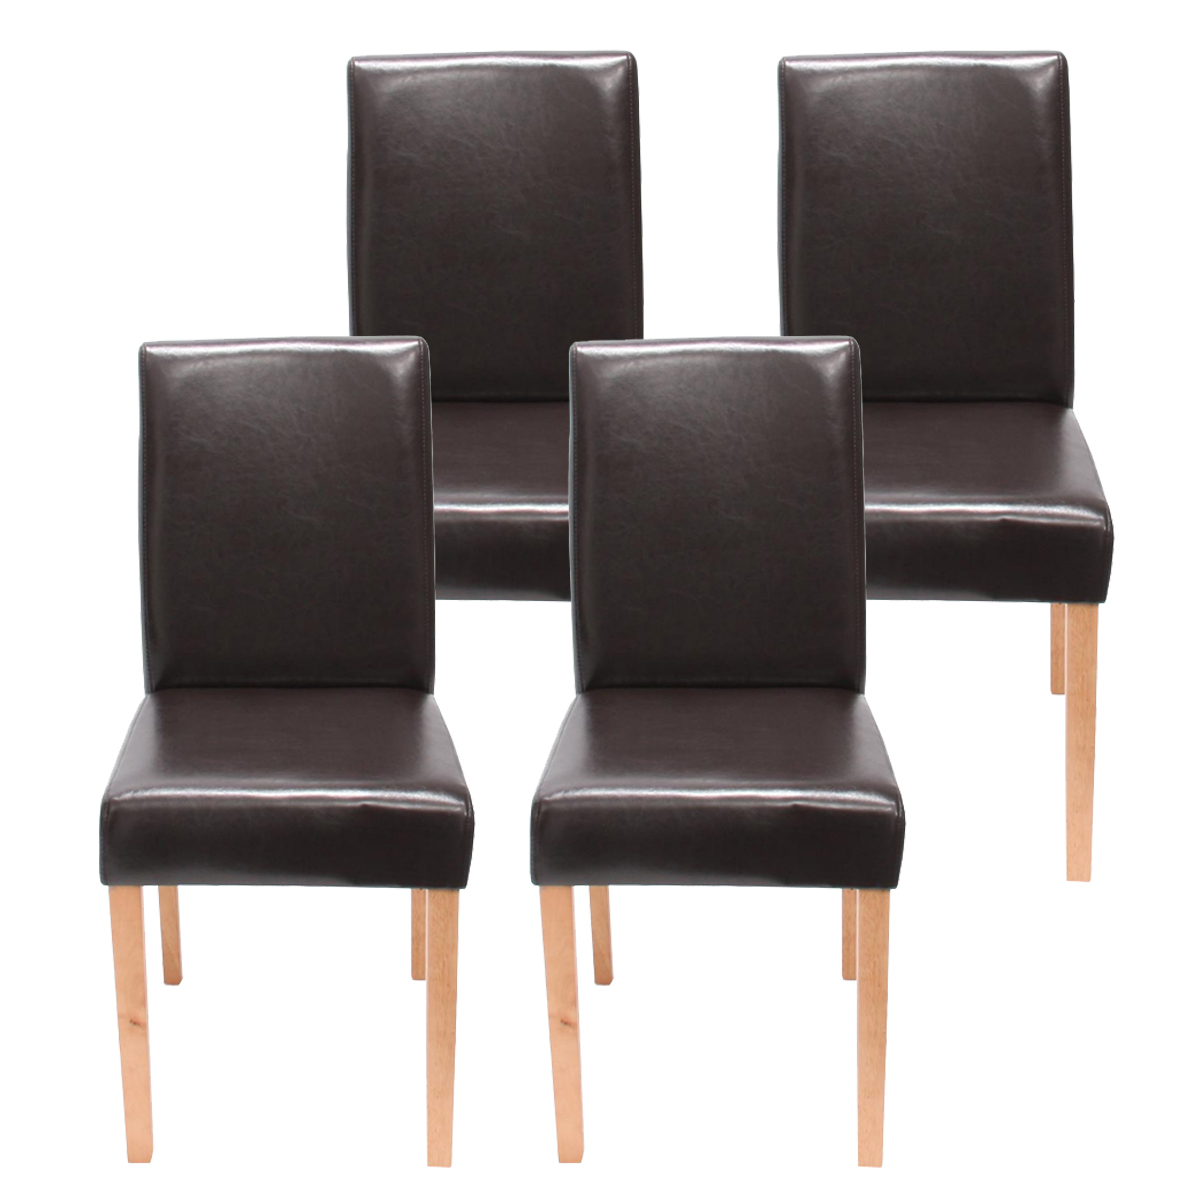 4x esszimmerstuhl stuhl littau leder kunstleder helle dunkle beine ebay. Black Bedroom Furniture Sets. Home Design Ideas